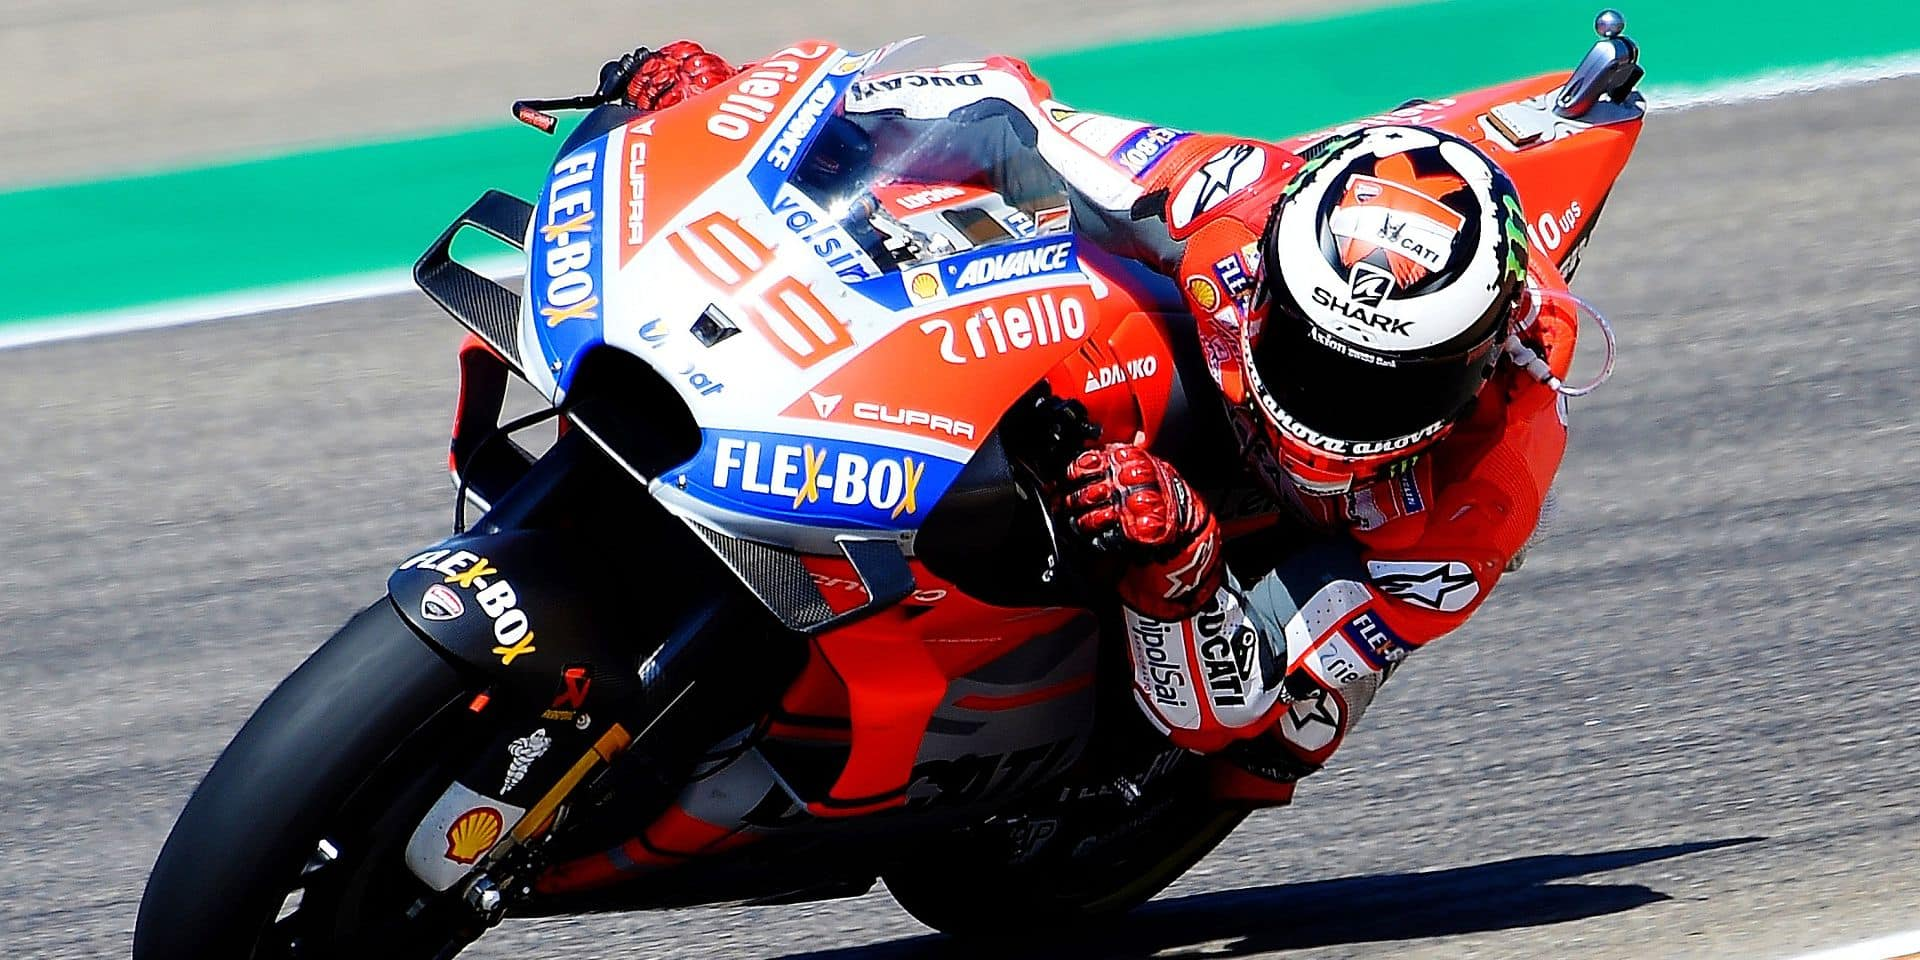 Ducati Team's Spanish rider Jorge Lorenzo rides during the MotoGP fourth free practice of the Aragon Grand Prix at the Motorland racetrack in Alcaniz, on September 22, 2018 (Photo by JOSE JORDAN / AFP)